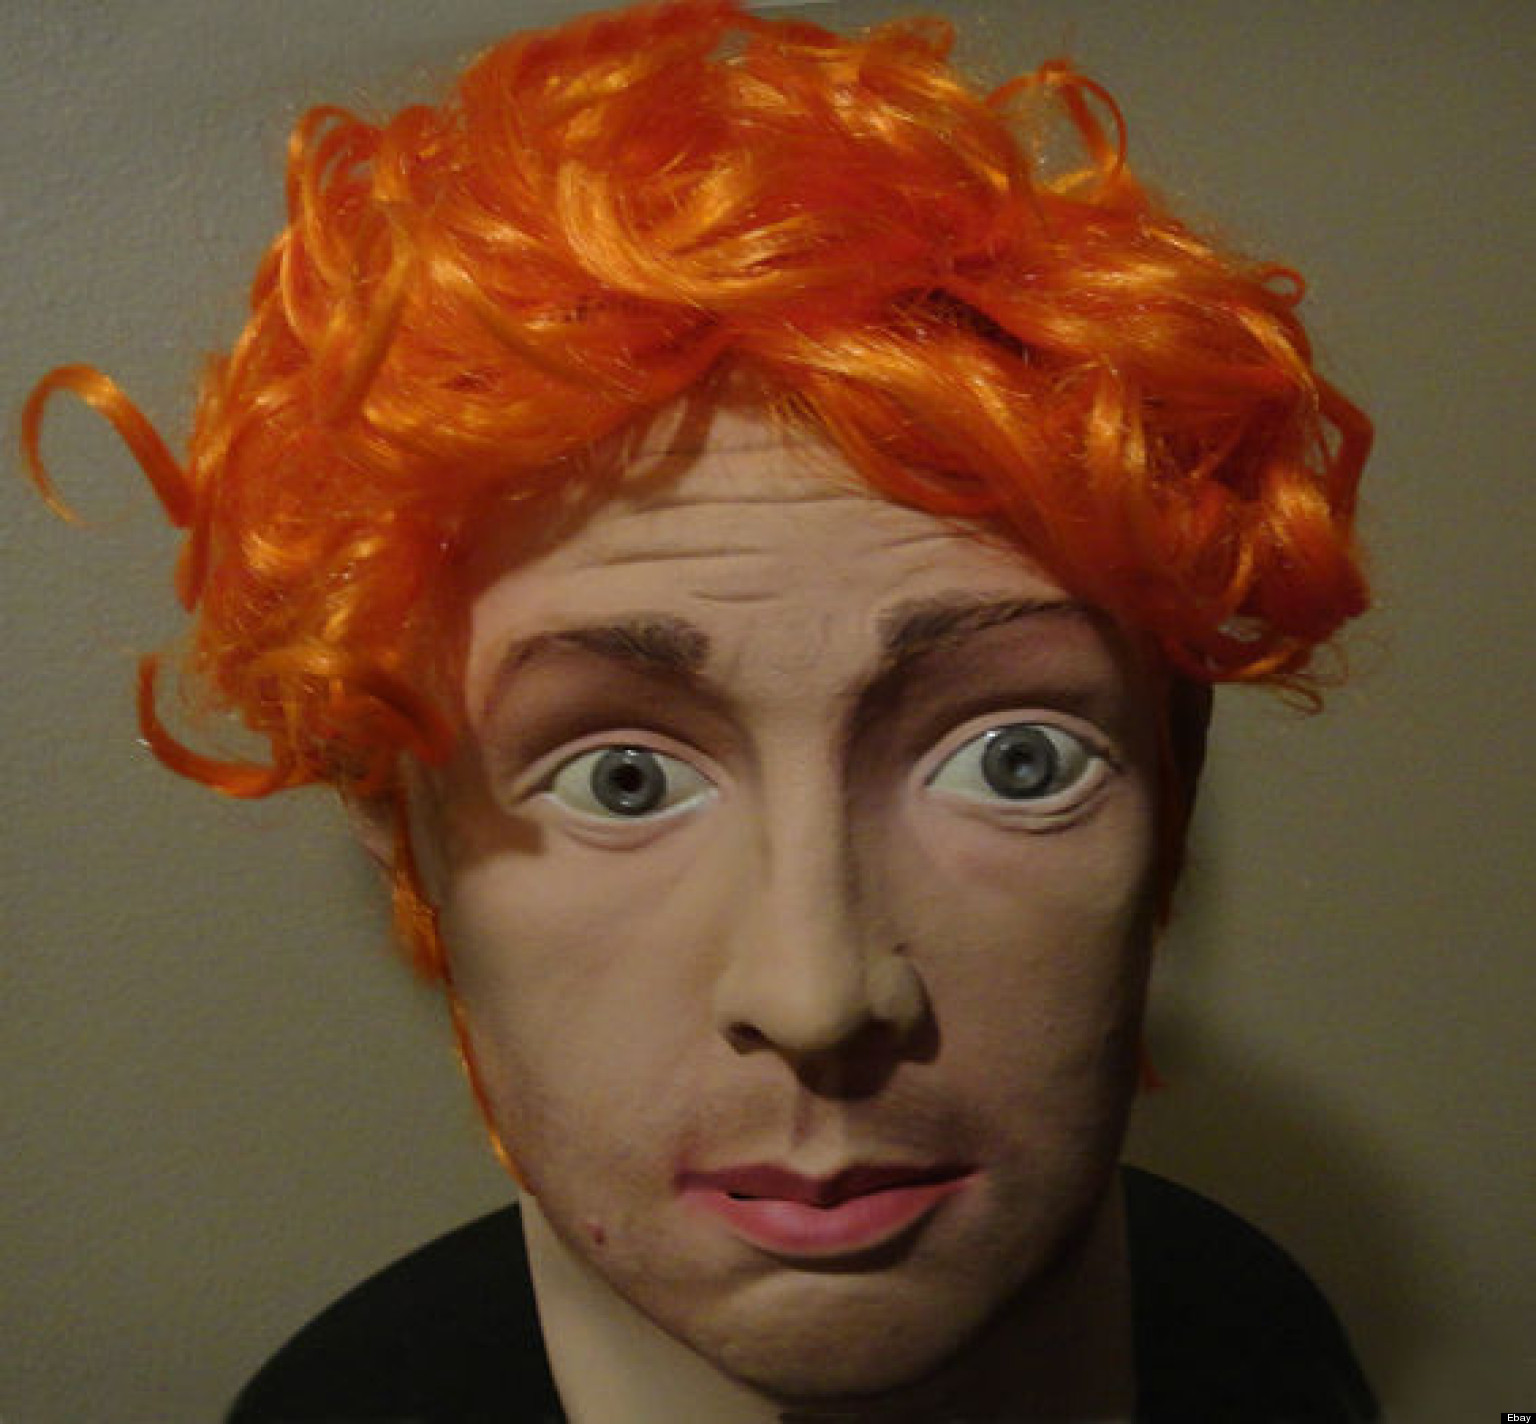 Is There A Shooting In Colorado: James Holmes Halloween Mask Listed On EBay For $500 (PHOTOS